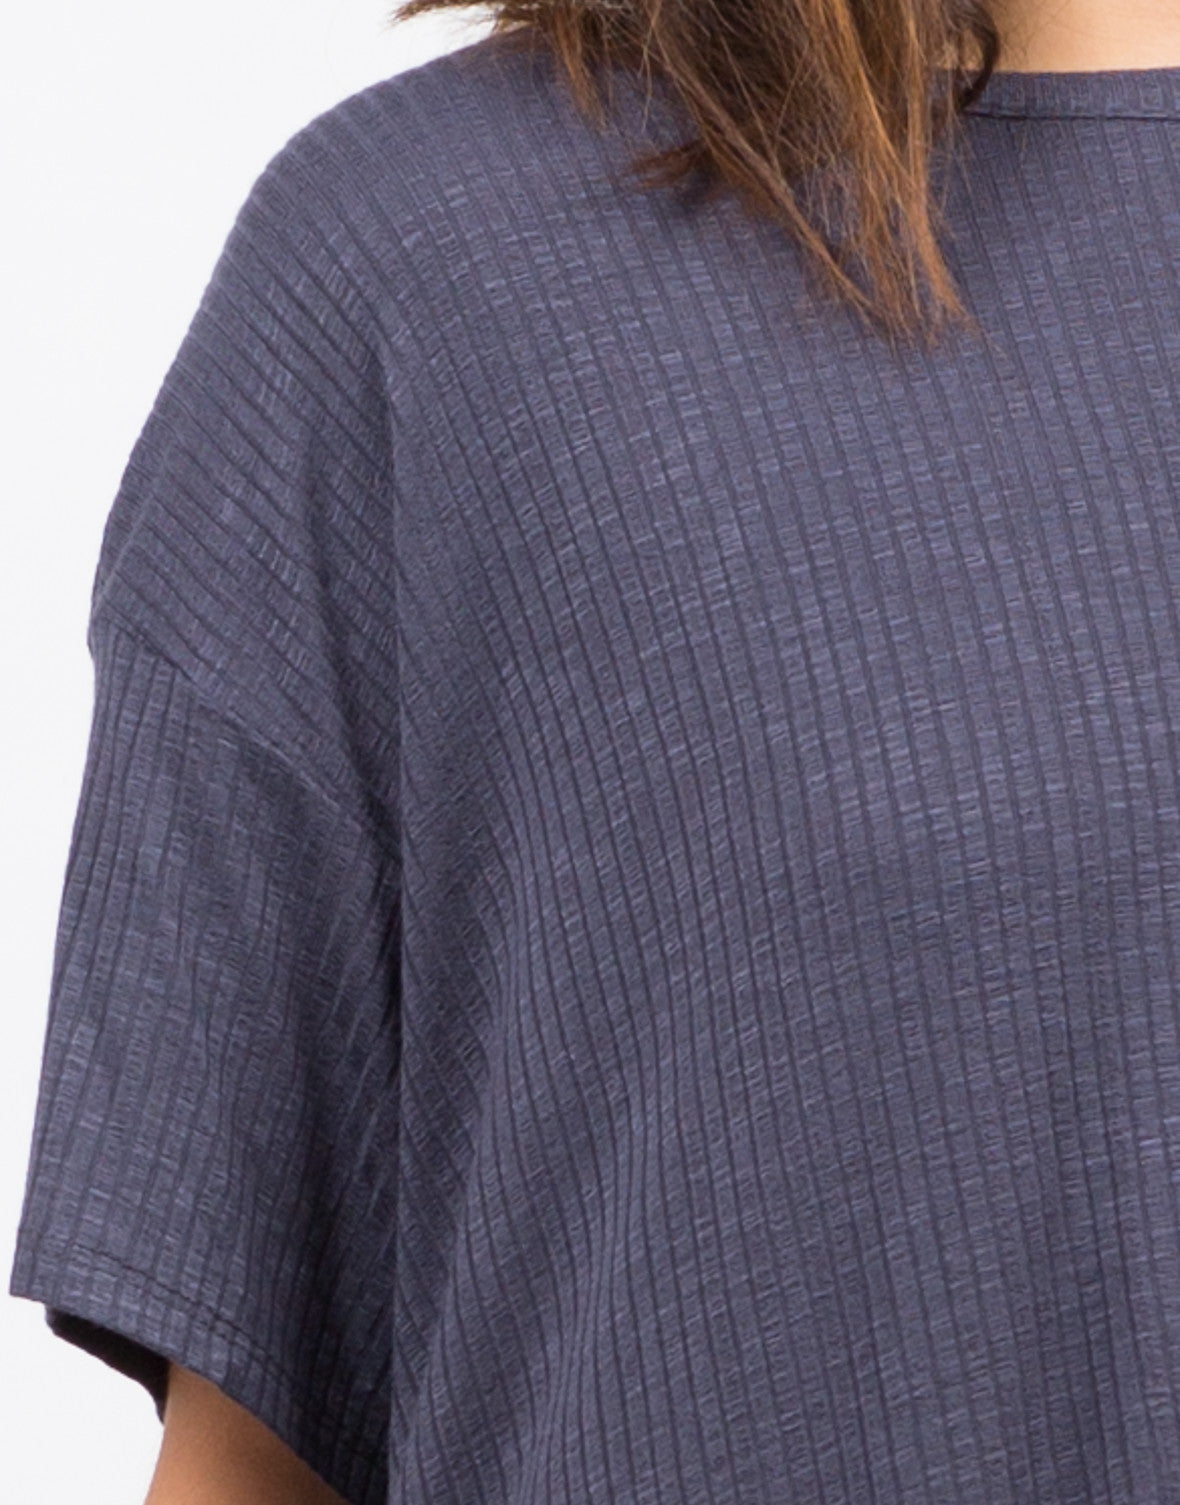 Lazy Sunday Ribbed Tee - 2020AVE